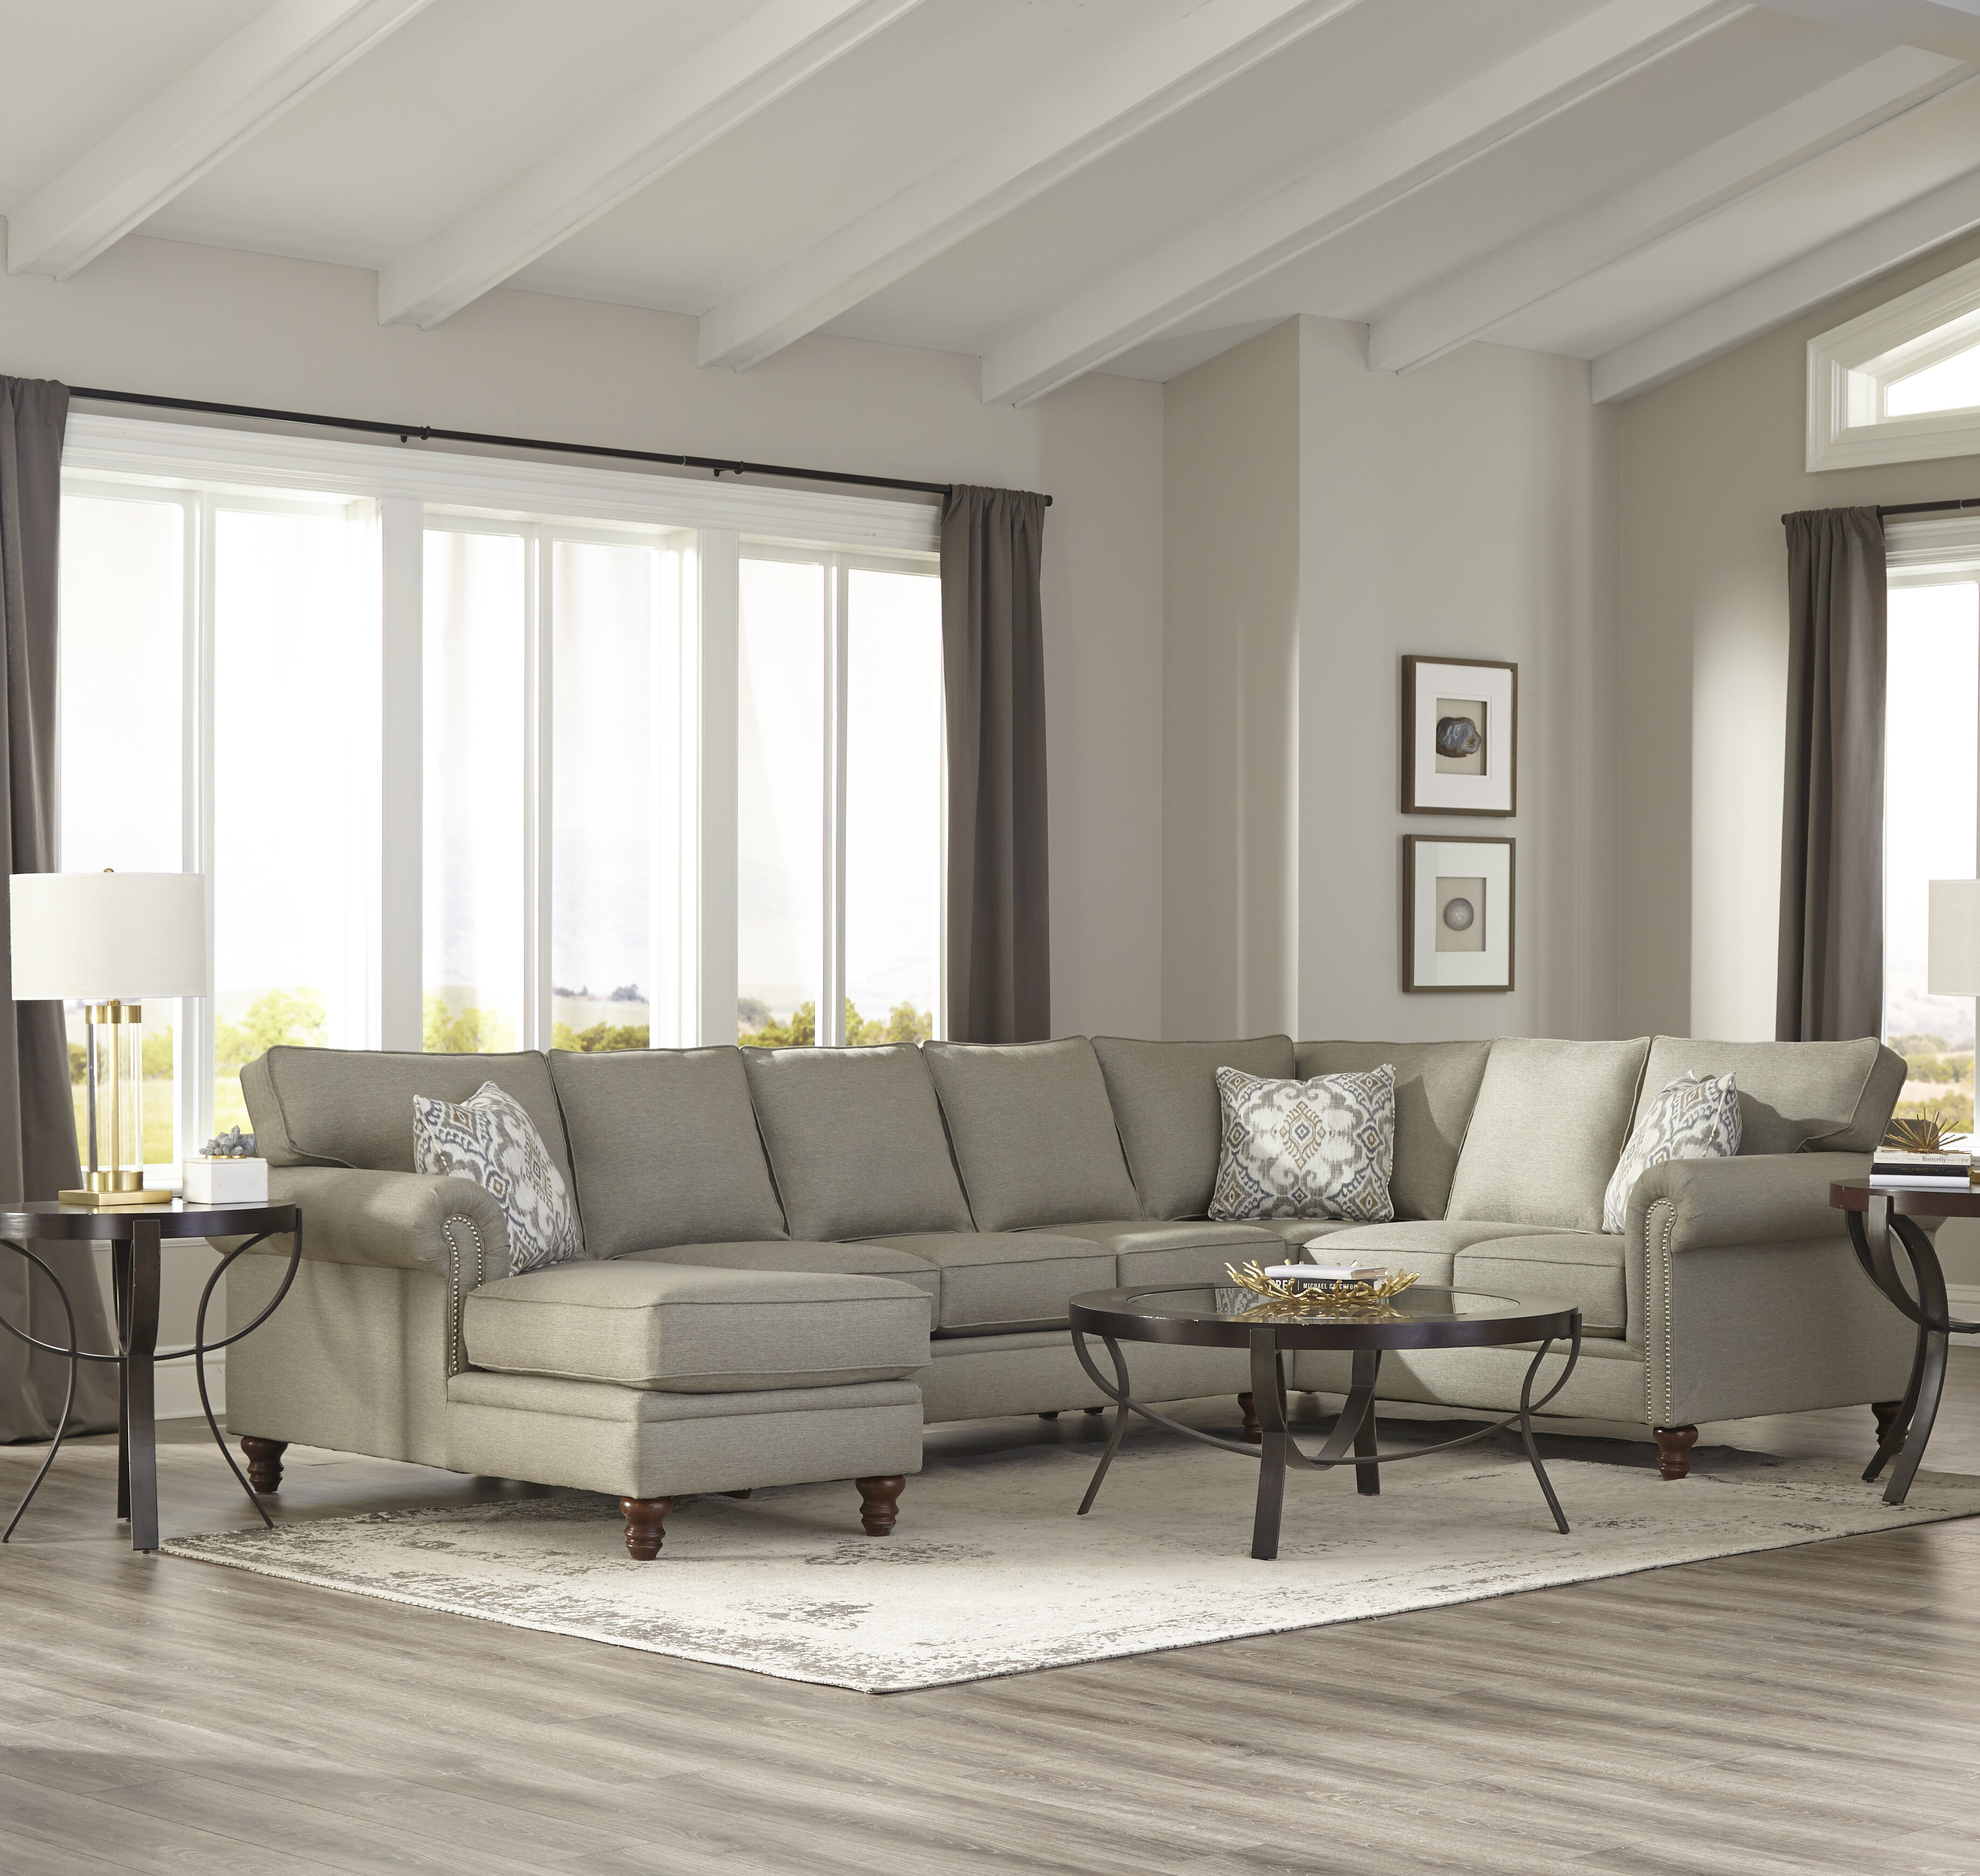 Darby Home Co Crothersville Ushaped Sectional Wayfair - Coffee table for u shaped sectional